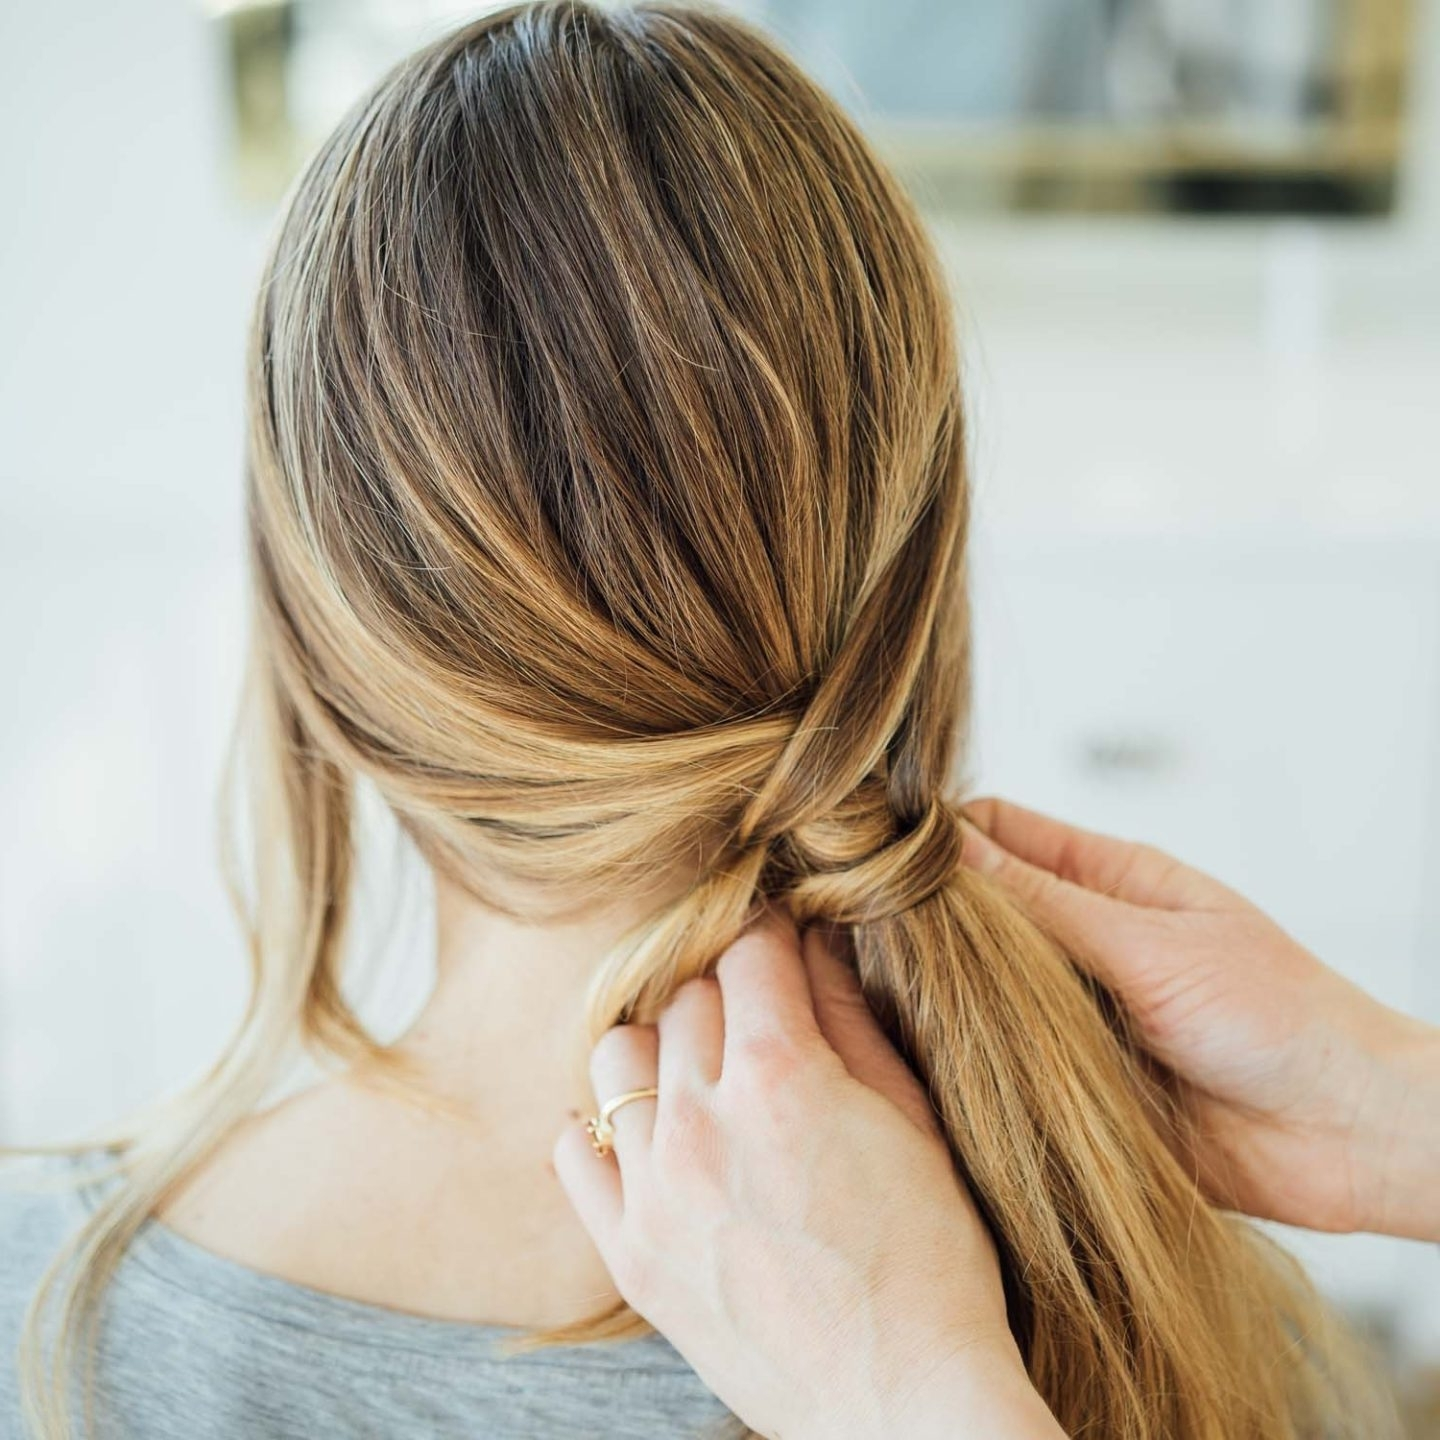 Trendy Messy Braid Ponytail Hairstyles With This Messy Braid Wrap Ponytail Is Absolutely Gorgeous – Aol Lifestyle (View 16 of 20)